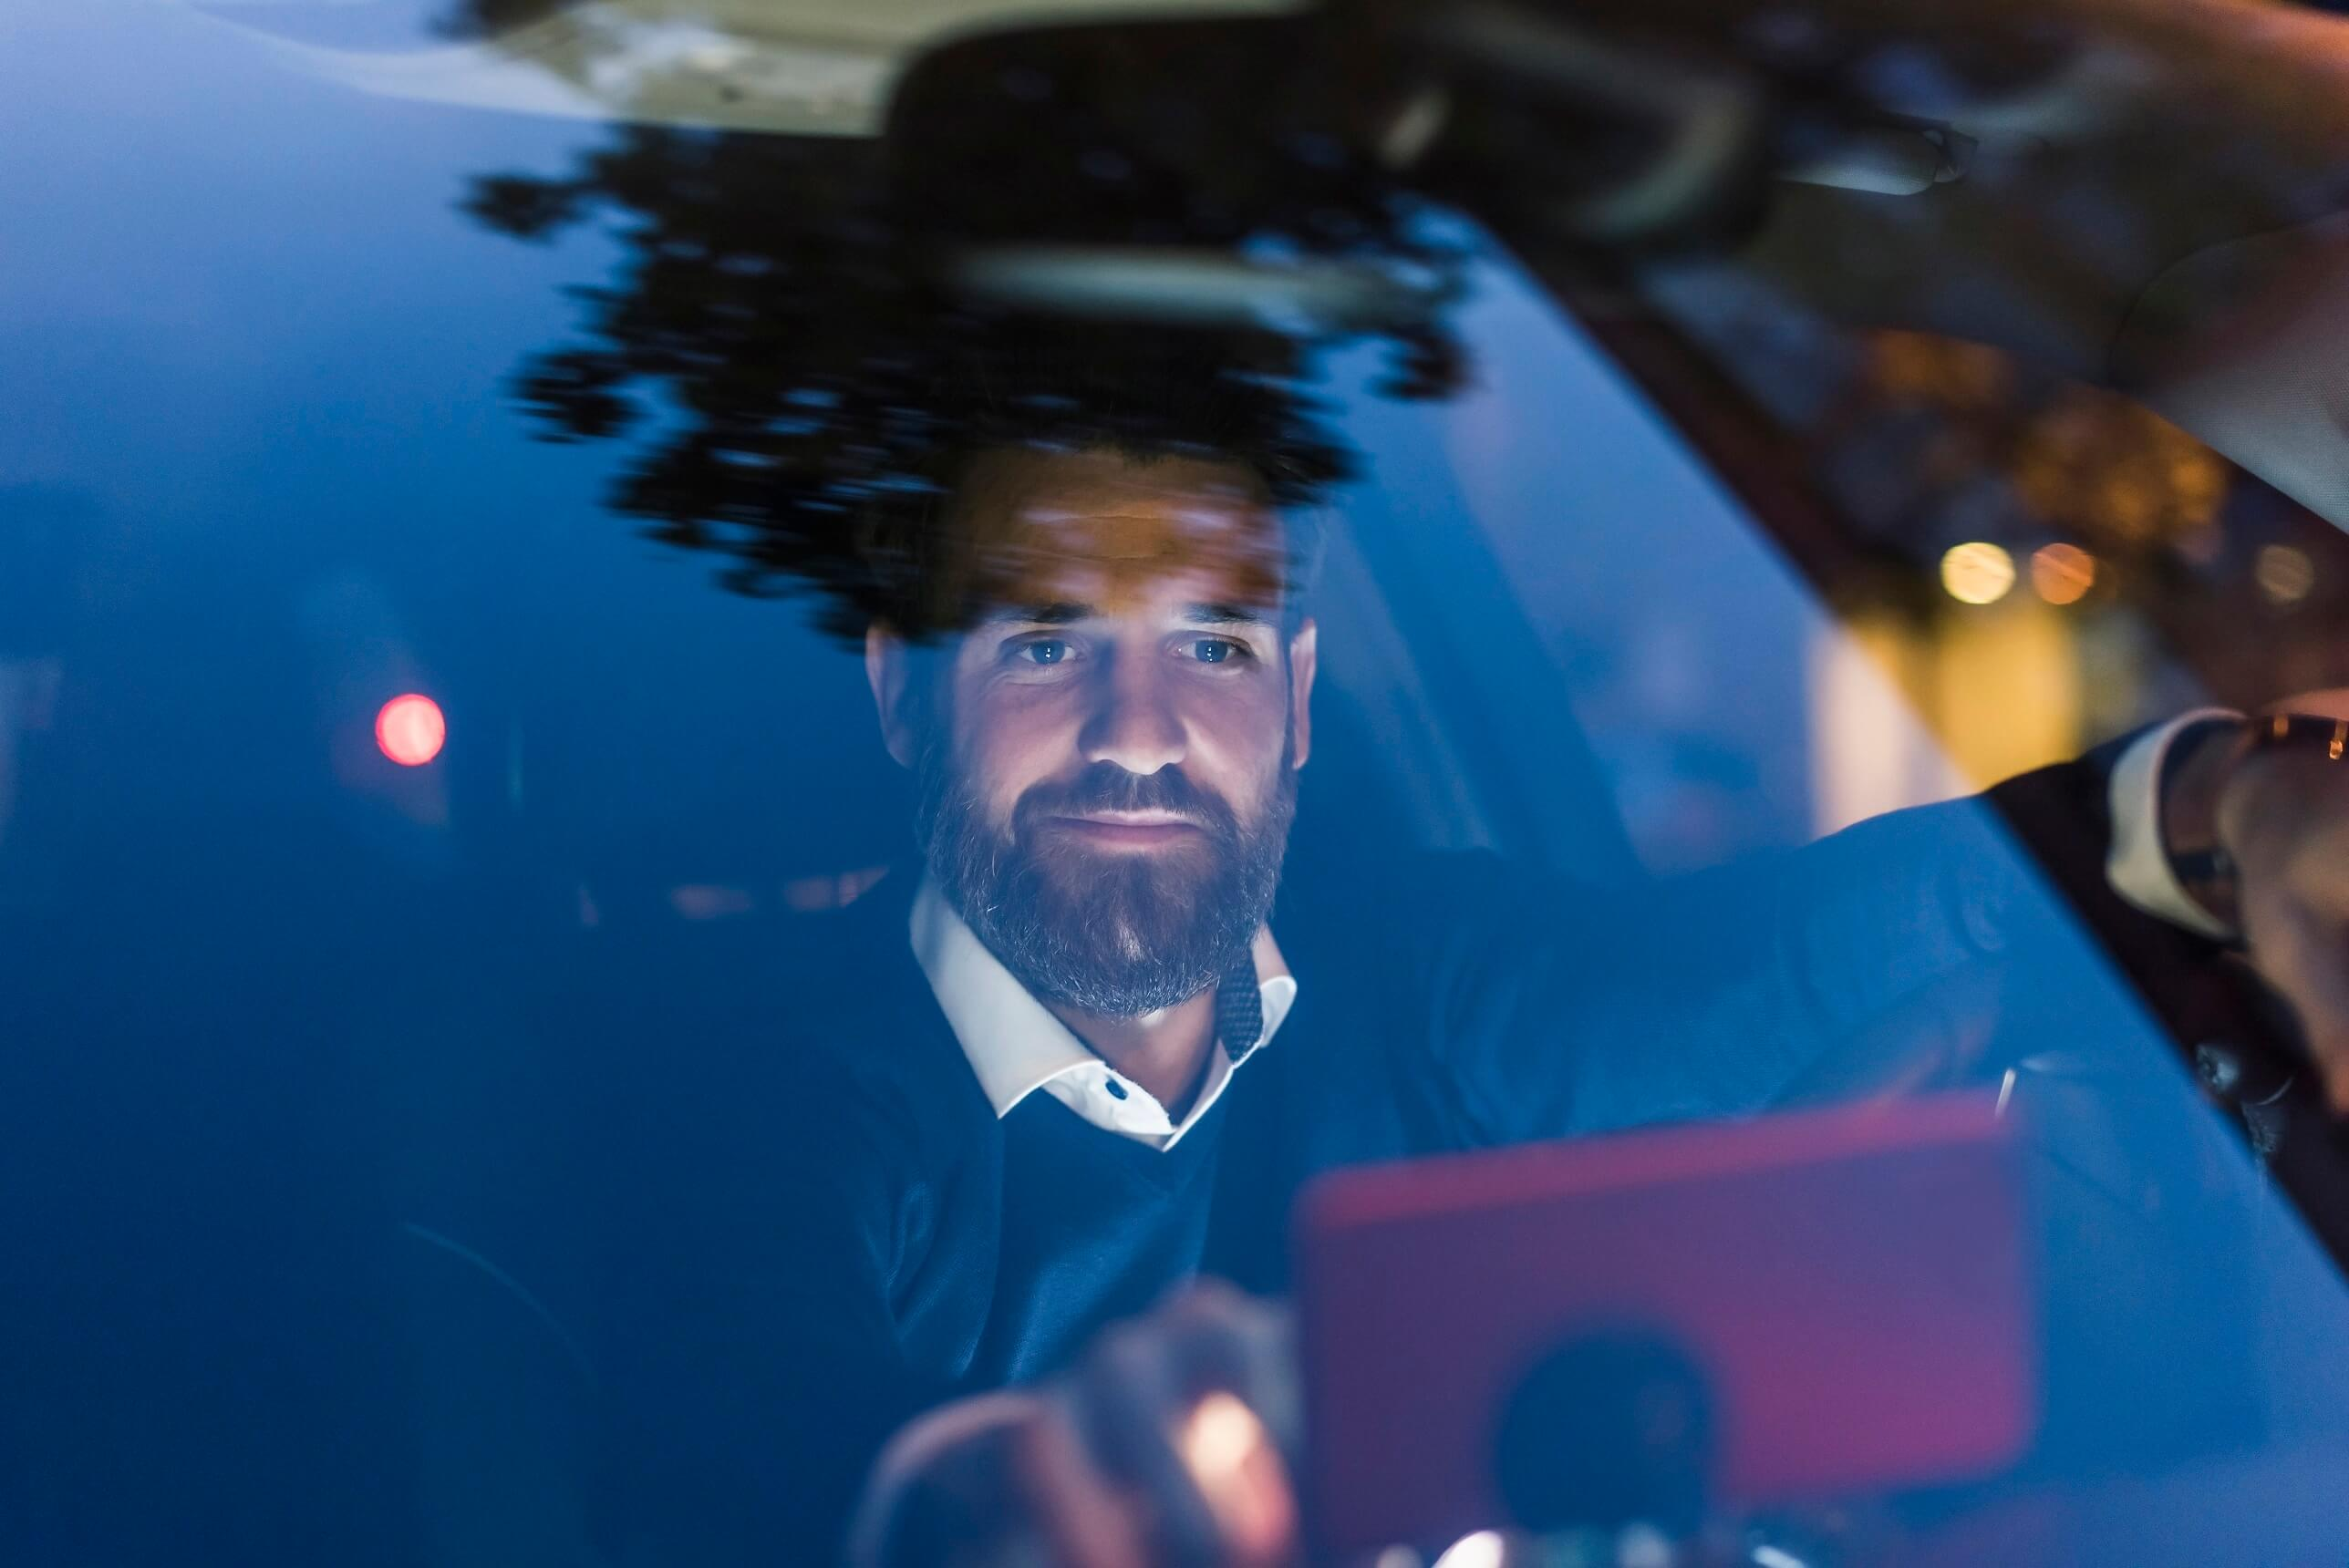 Businessman using navigation device in car at night